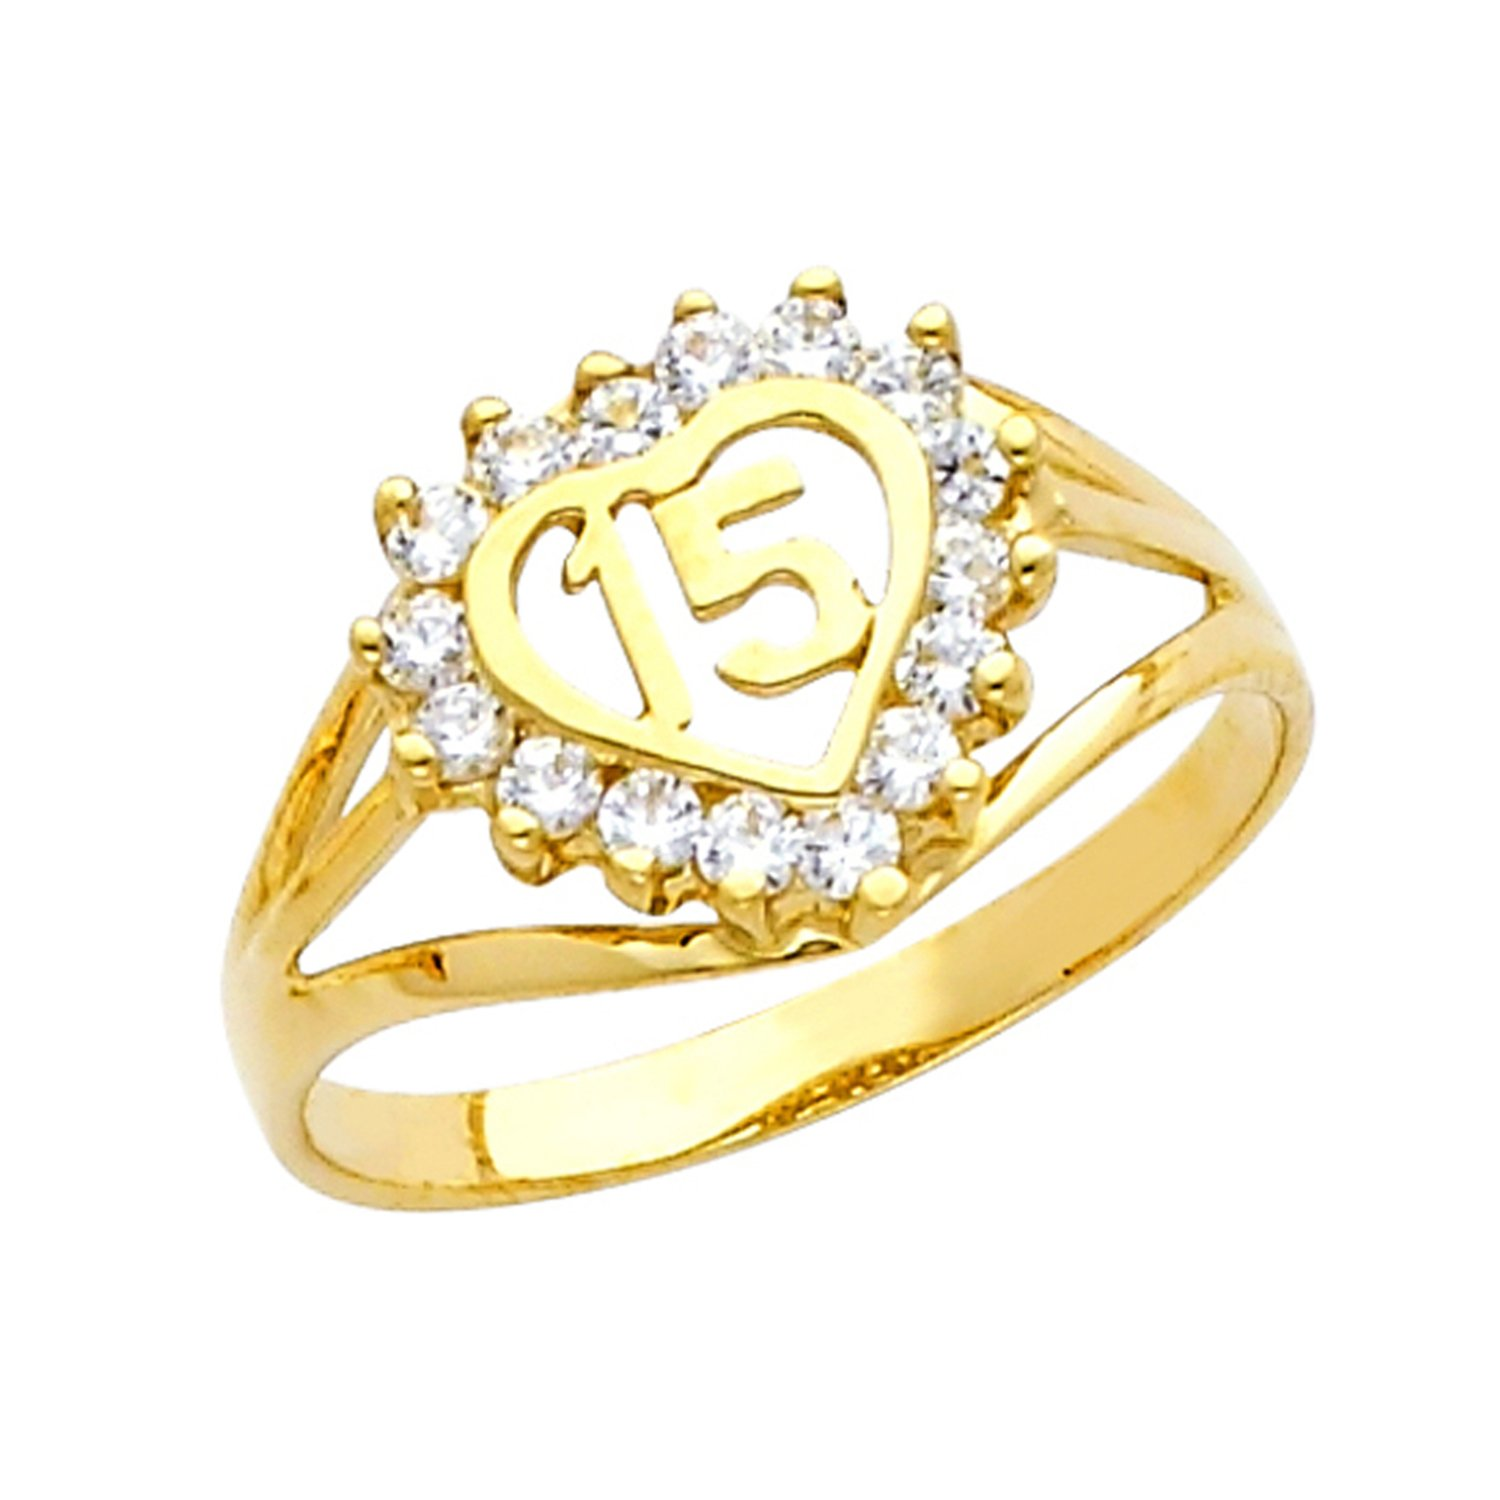 rings avery zoom products quinceanera share cm charm james